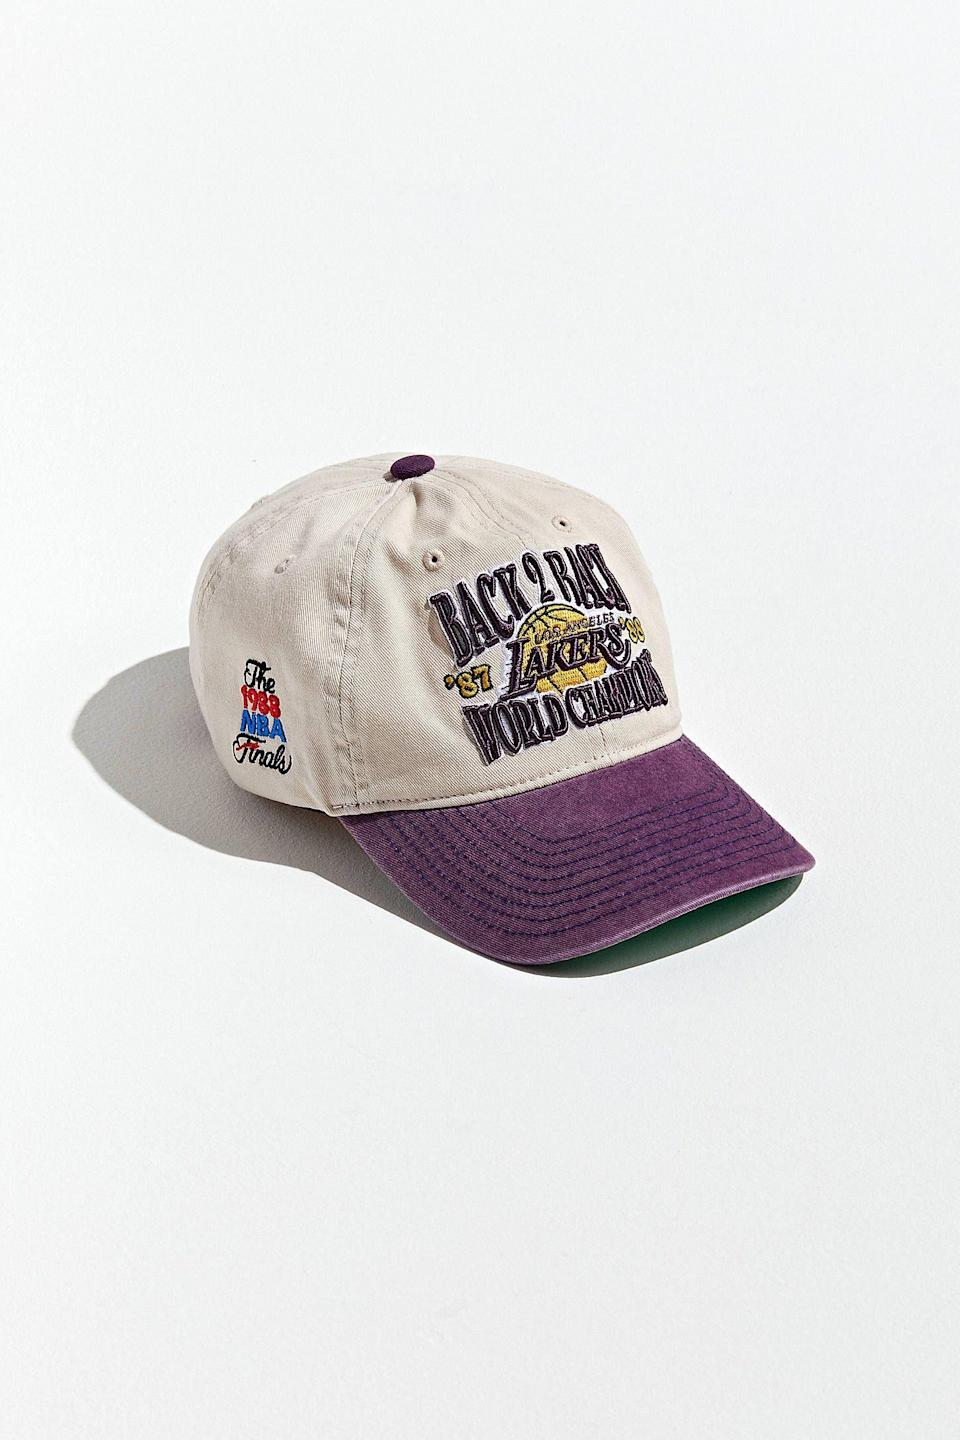 """<p><strong>Mitchell & Ness x UO Exclusive</strong></p><p>urbanoutfitters.com</p><p><strong>$36.00</strong></p><p><a href=""""https://go.redirectingat.com?id=74968X1596630&url=https%3A%2F%2Fwww.urbanoutfitters.com%2Fshop%2Fmitchell-and-ness-uo-exclusive-la-lakers-back-to-back-champs-baseball-hat&sref=https%3A%2F%2Fwww.countryliving.com%2Fshopping%2Fgifts%2Fg24168813%2Fboyfriend-gift-ideas%2F"""" rel=""""nofollow noopener"""" target=""""_blank"""" data-ylk=""""slk:Shop Now"""" class=""""link rapid-noclick-resp"""">Shop Now</a></p><p>Basketball-loving boyfriends will go wild for this vintage-inspired Lakers hat.</p>"""